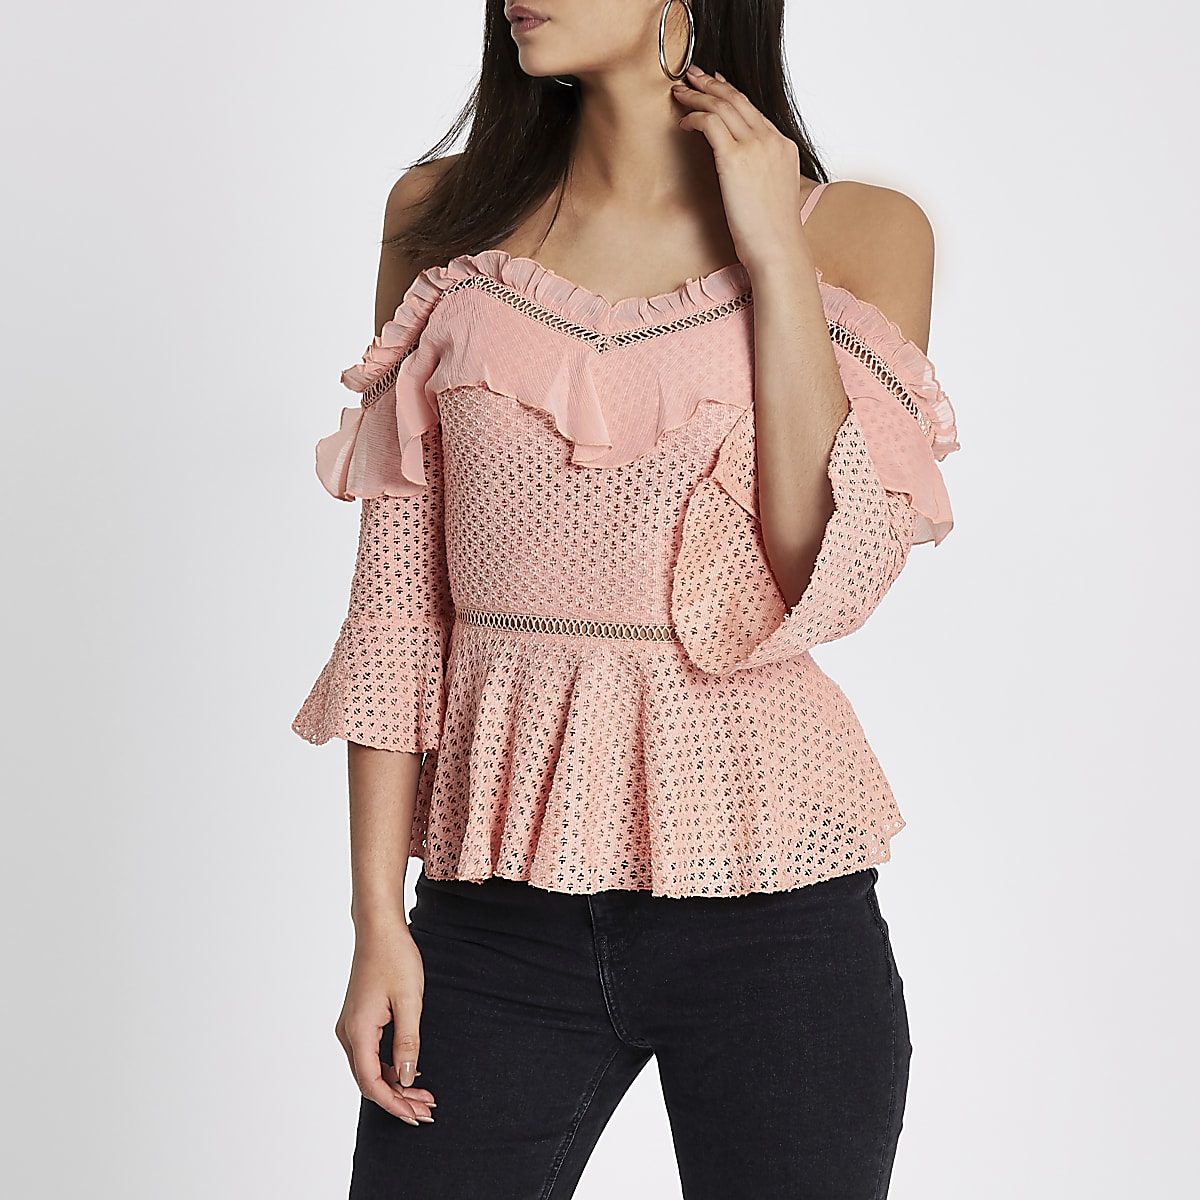 Peach lace frill cold shoulder peplum top